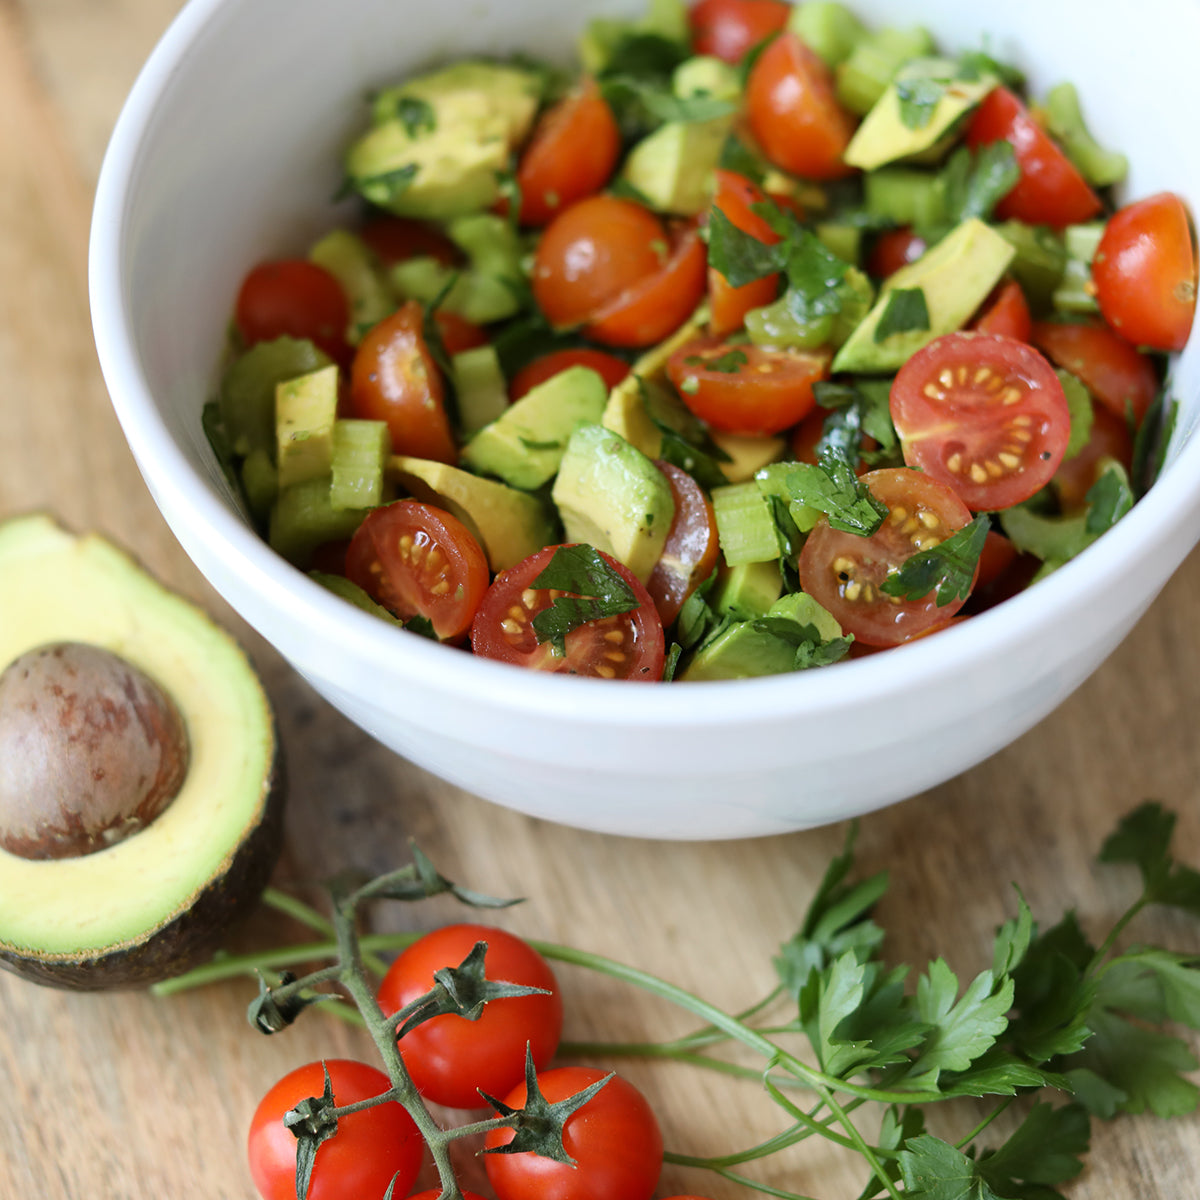 Cherry Tomato and Avocado Salad